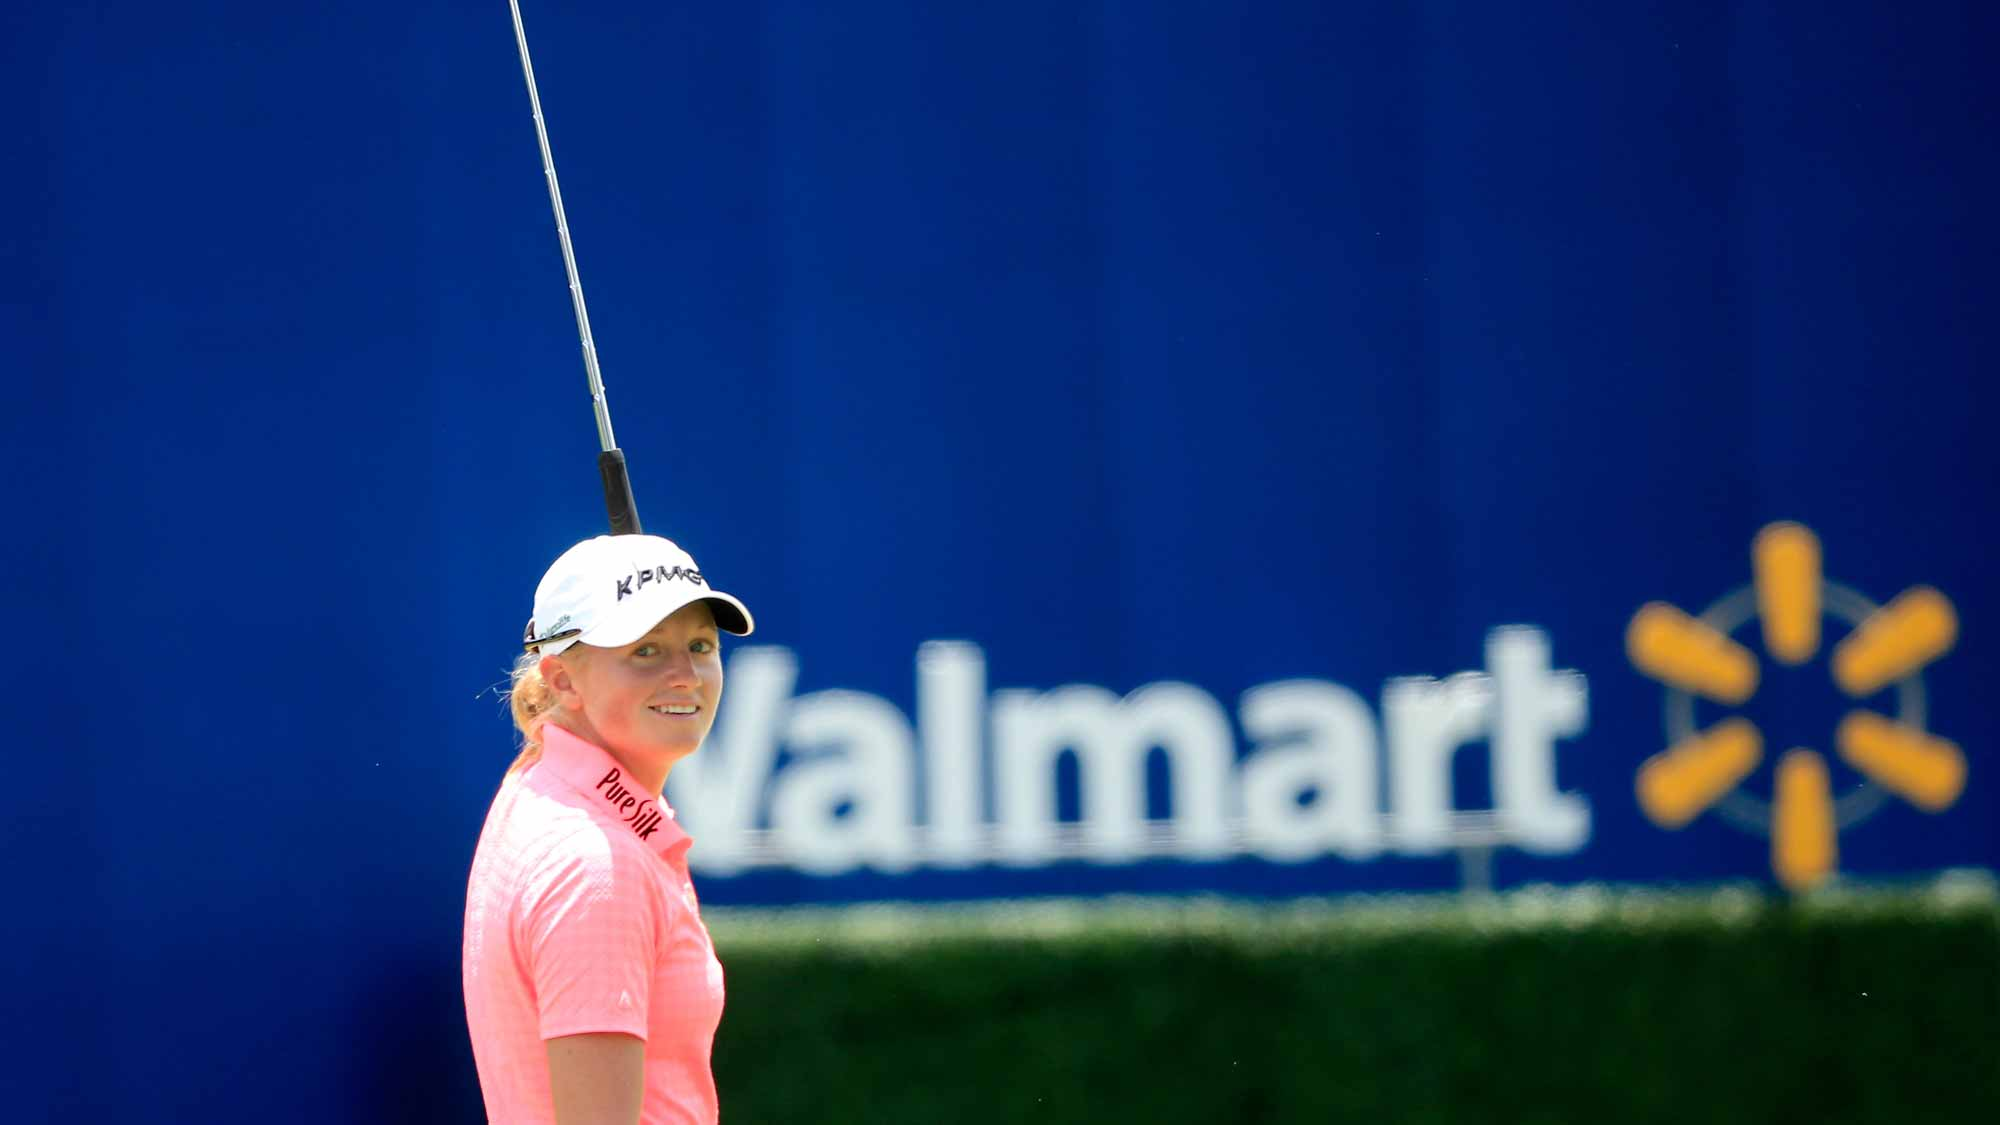 Stacy Lewis of the United States reacts to a birdie on the 17th hole during the second round of the Walmart NW Arkansas Championship Presented by P&G at Pinnacle Country Club